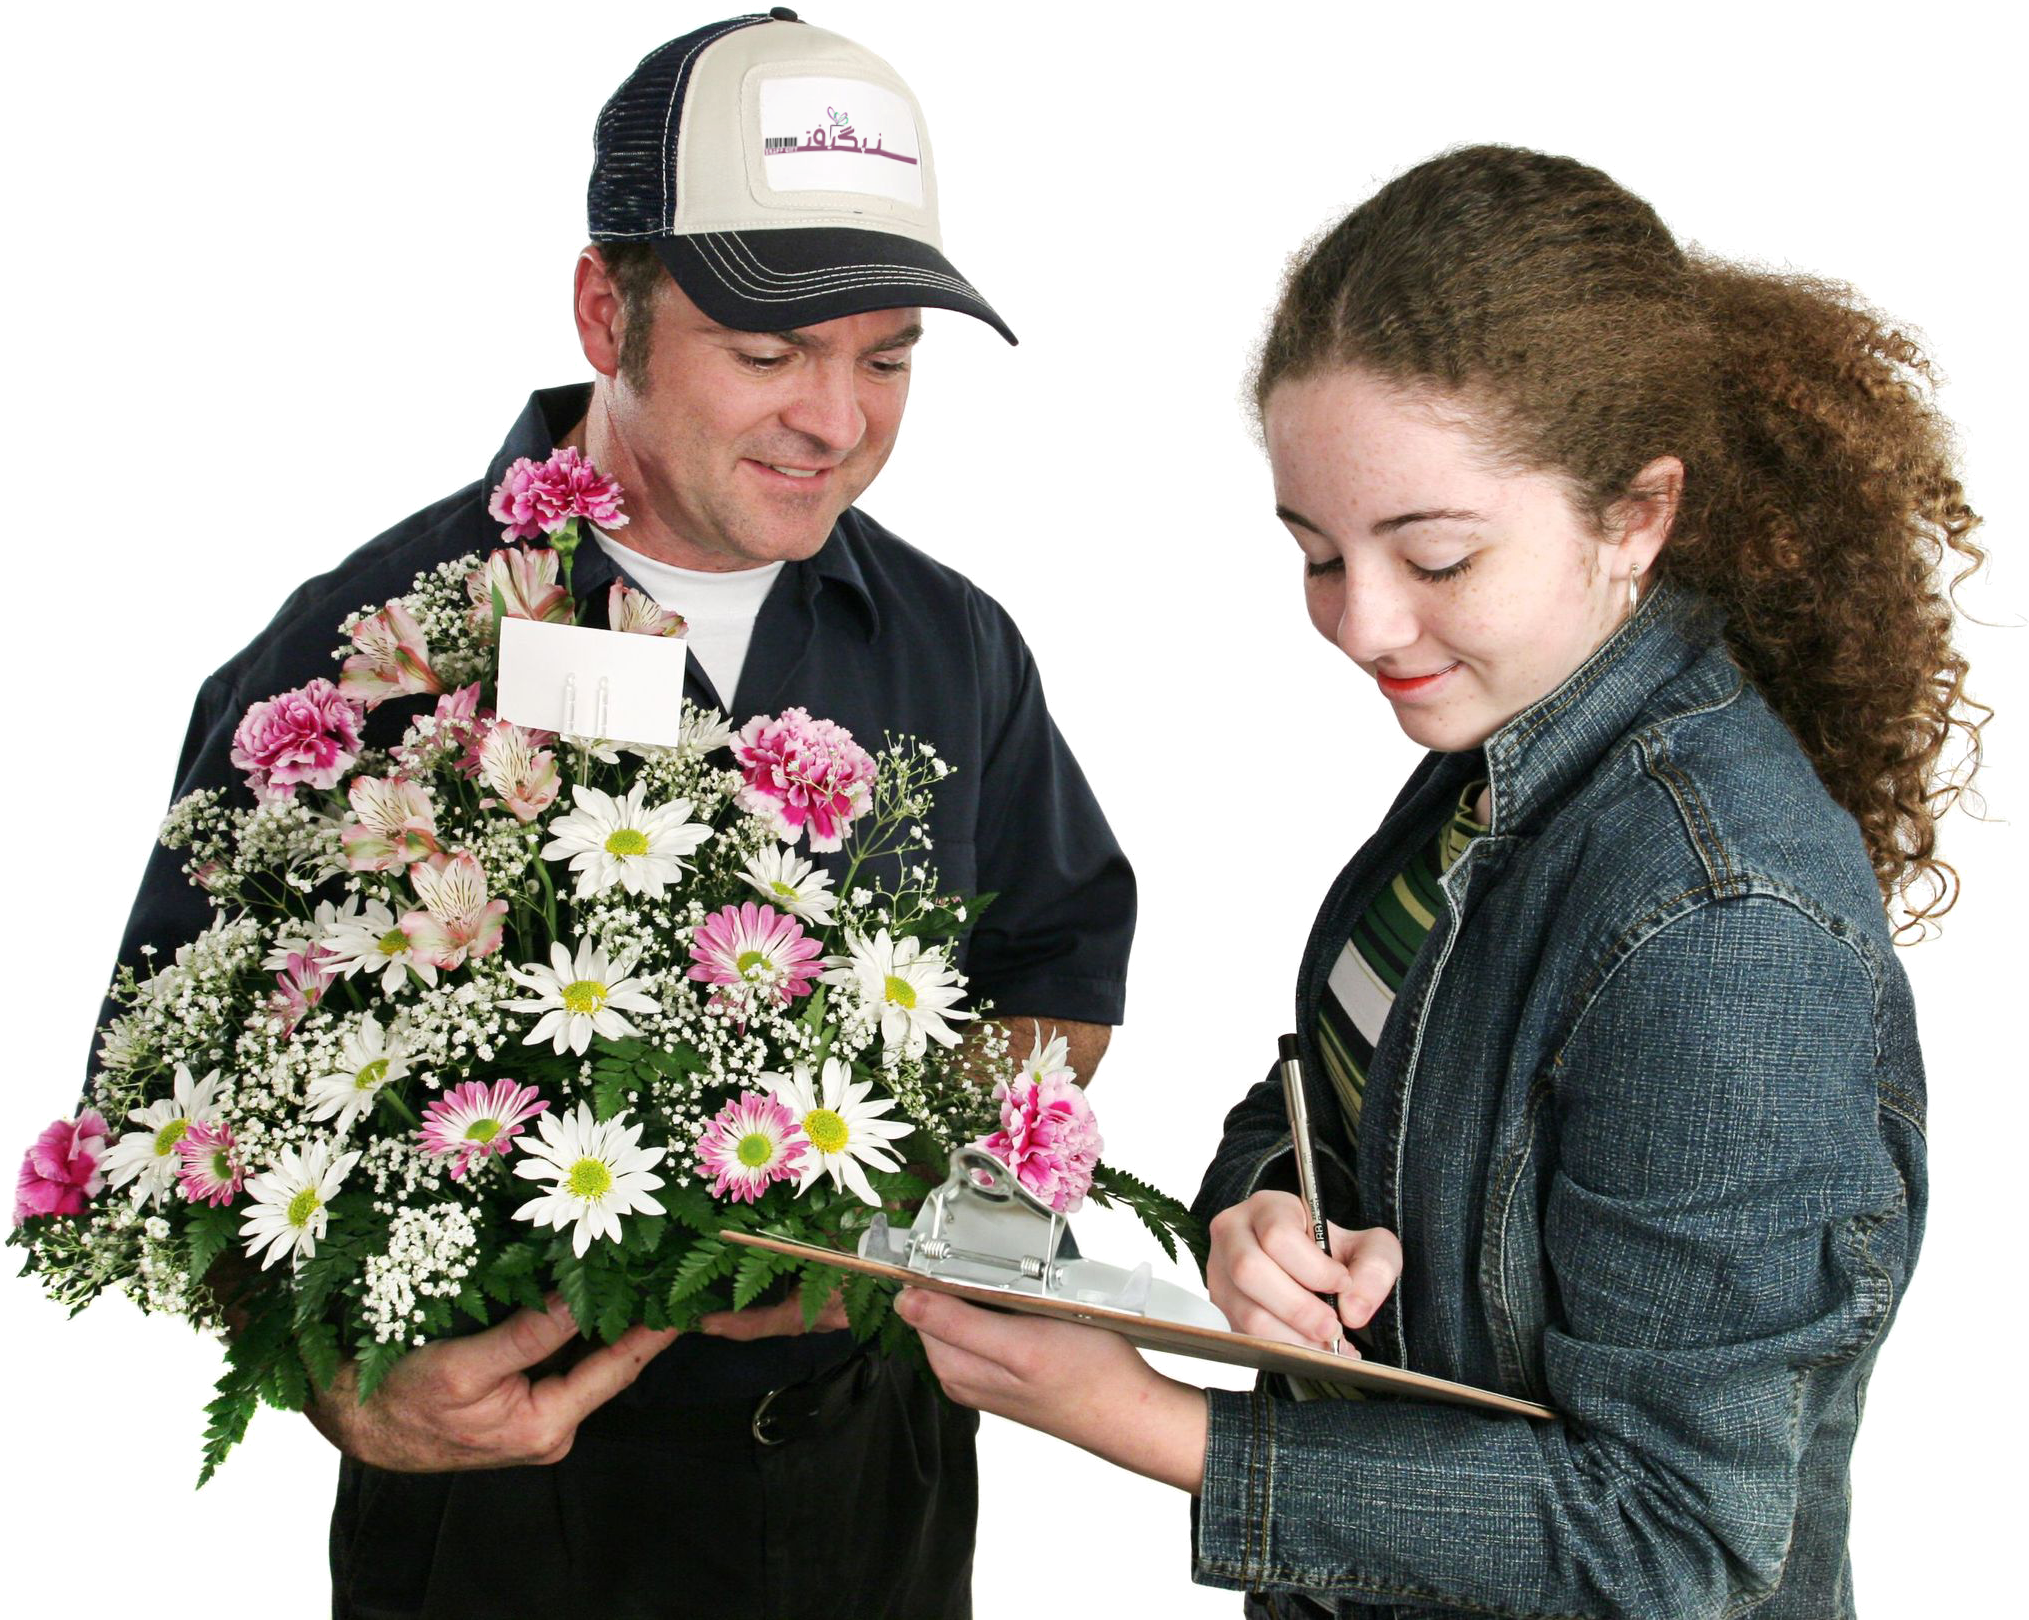 Flower-Delivery